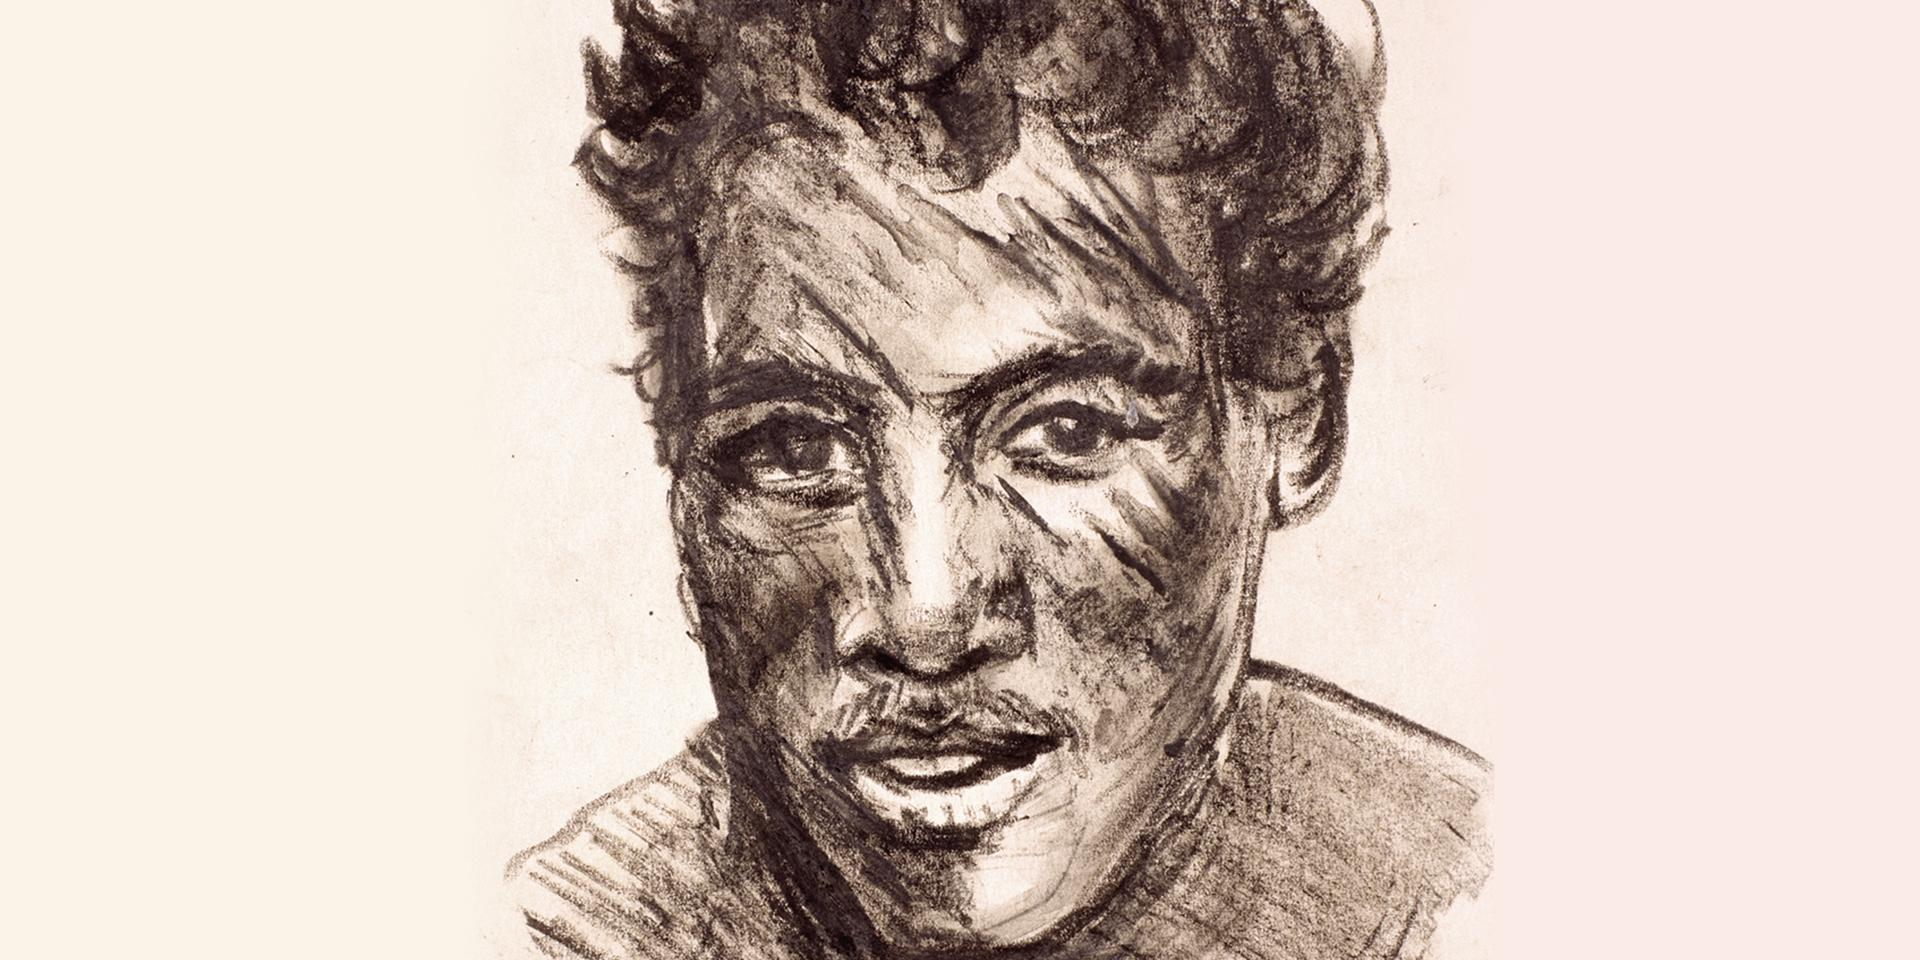 Portrait of a soldier, 1945. Sketch in 'Blanco' by Private Wilfrid James Myers, 7 July 1945